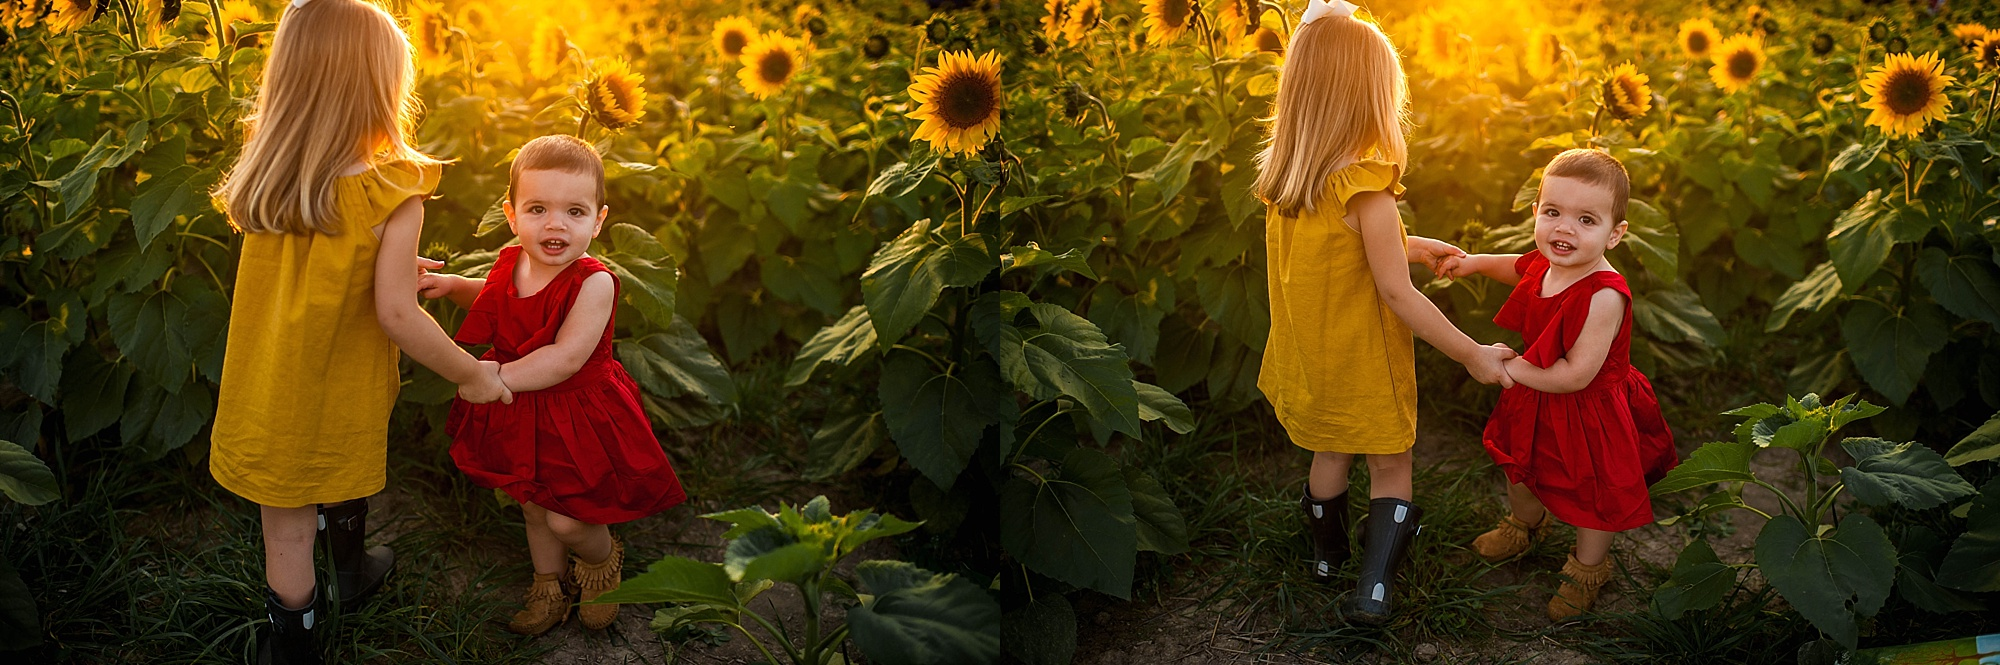 lauren-grayson-photography-cleveland-ohio-photographer-sunflower-fields-sunset-golden-hour-photo-shoot-mommy-and-me-family-child-photographer_0554.jpg